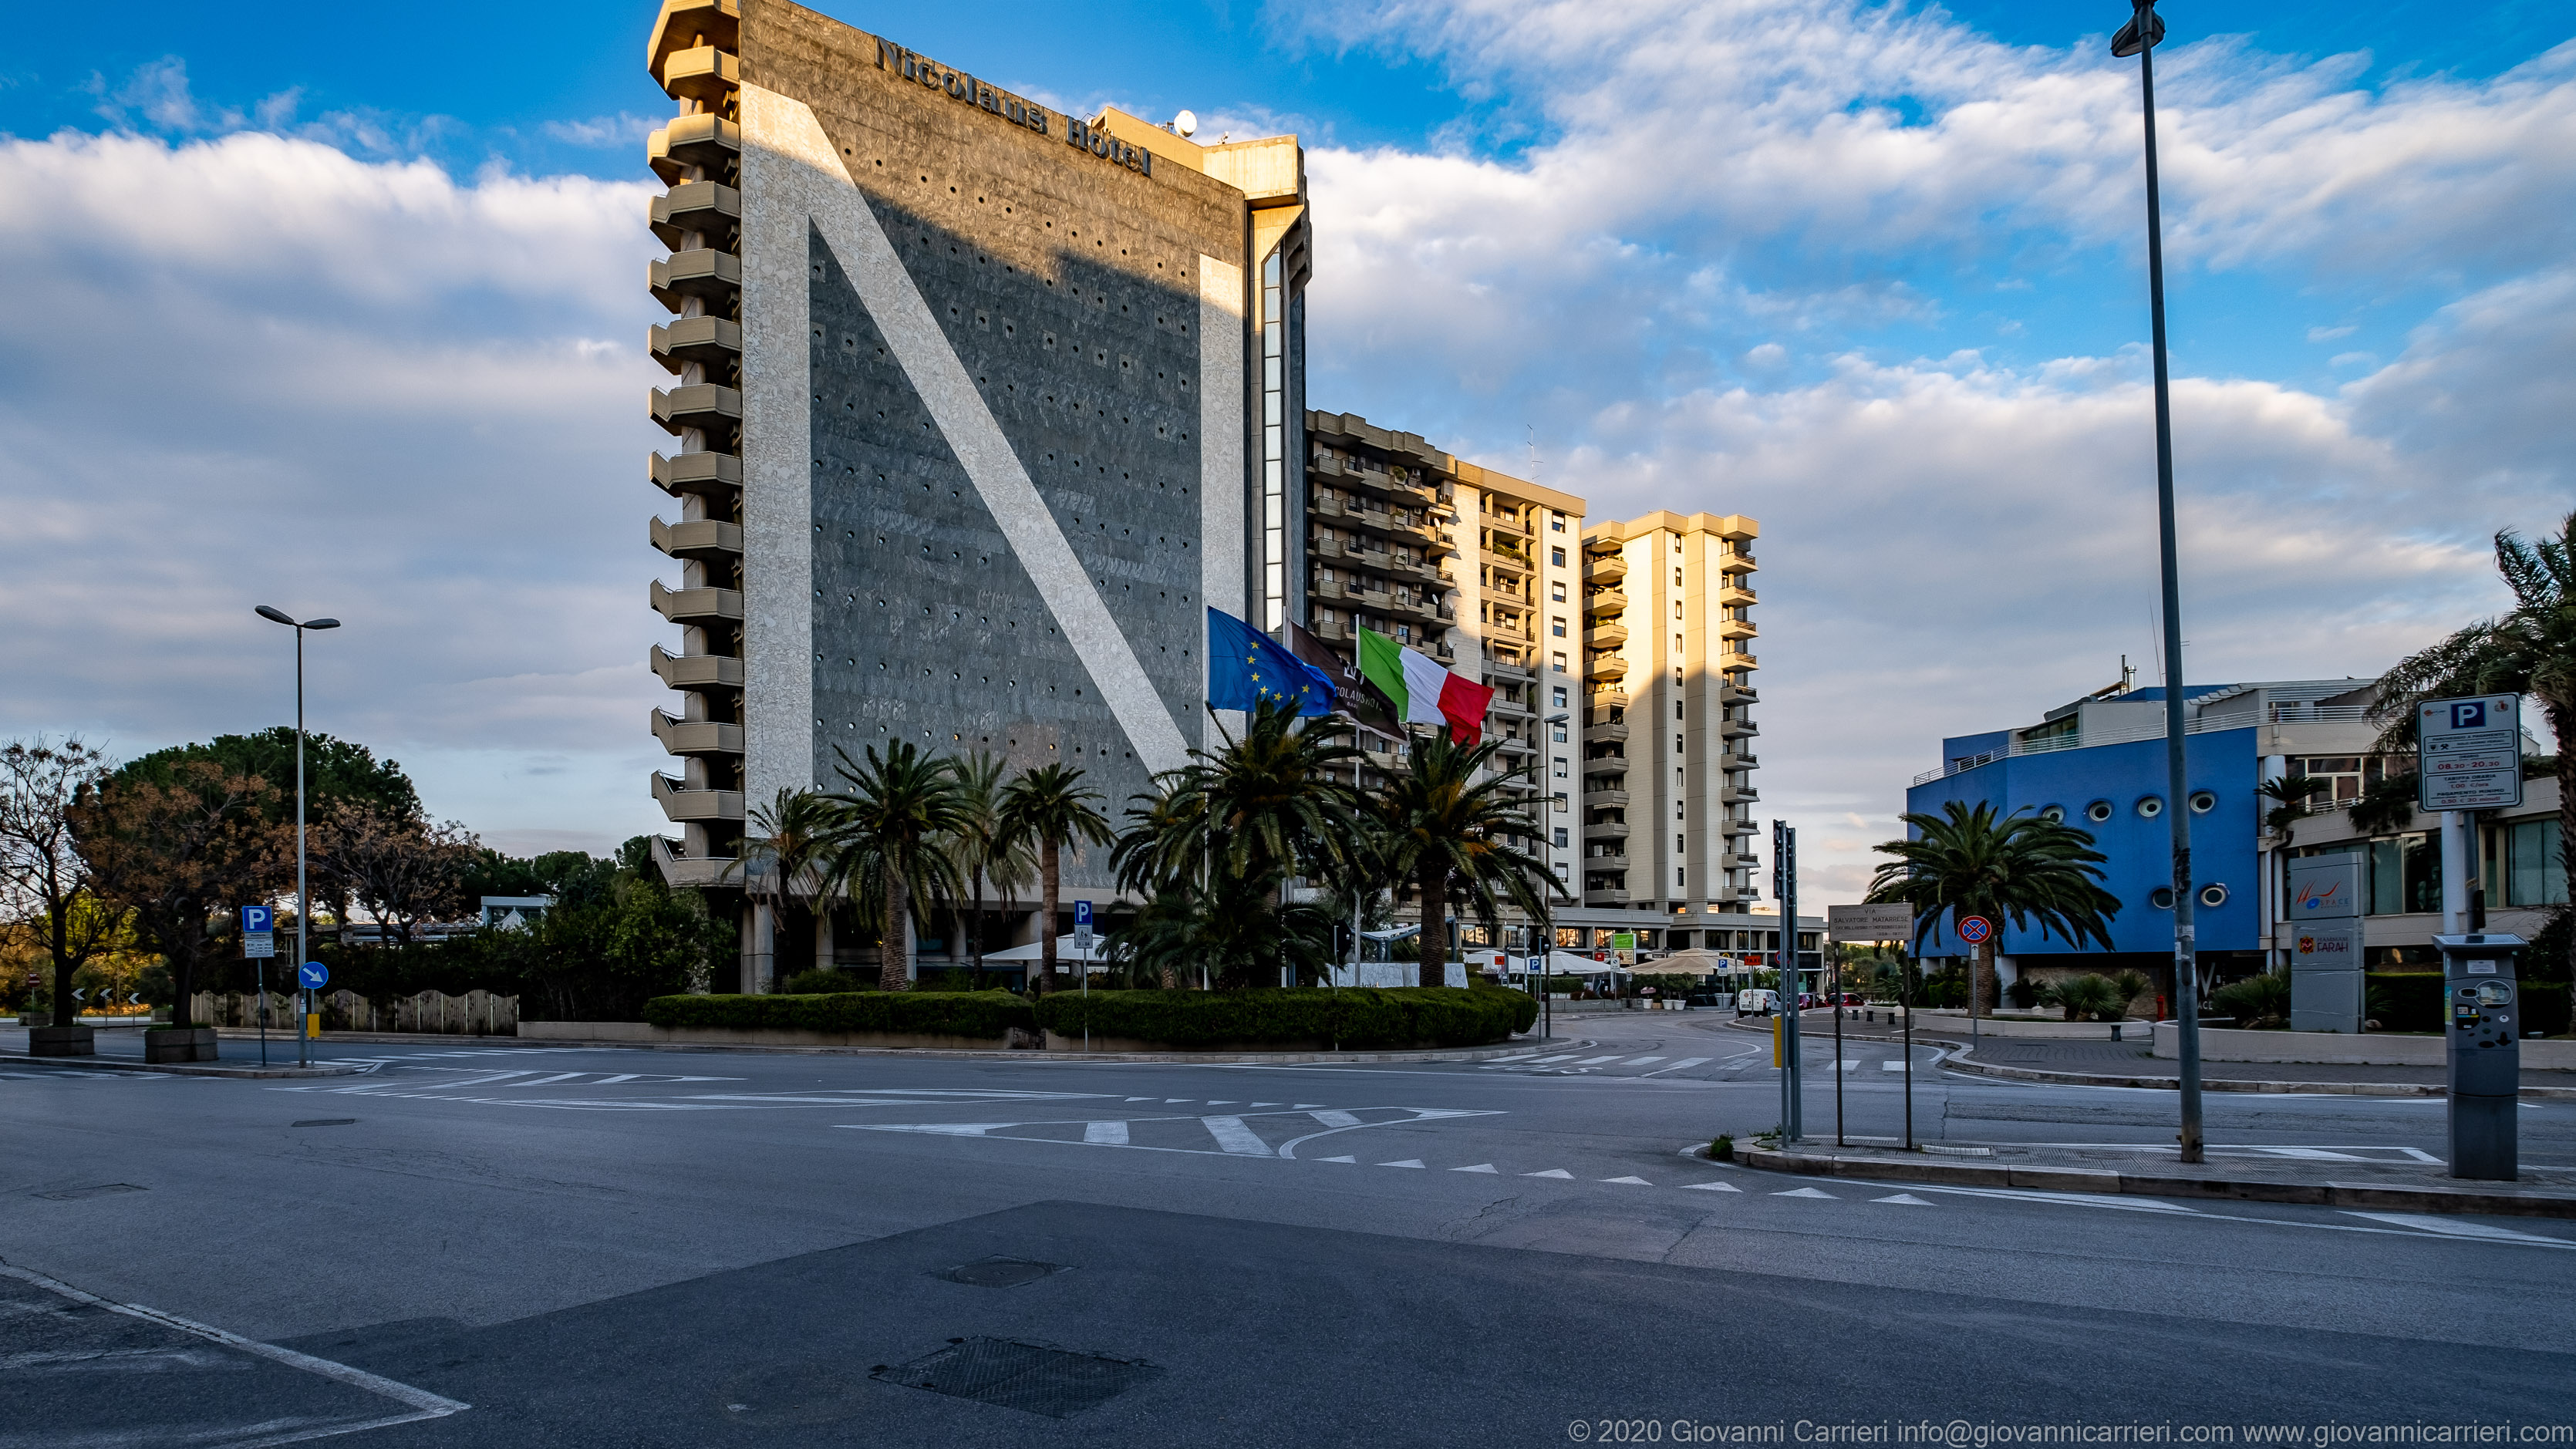 Hotel Sheraton, Bari An unlikely image in normal times, Via Cardinale Agostino Ciasca and Via Salvatore Matarrese have never been so desolate and empty...